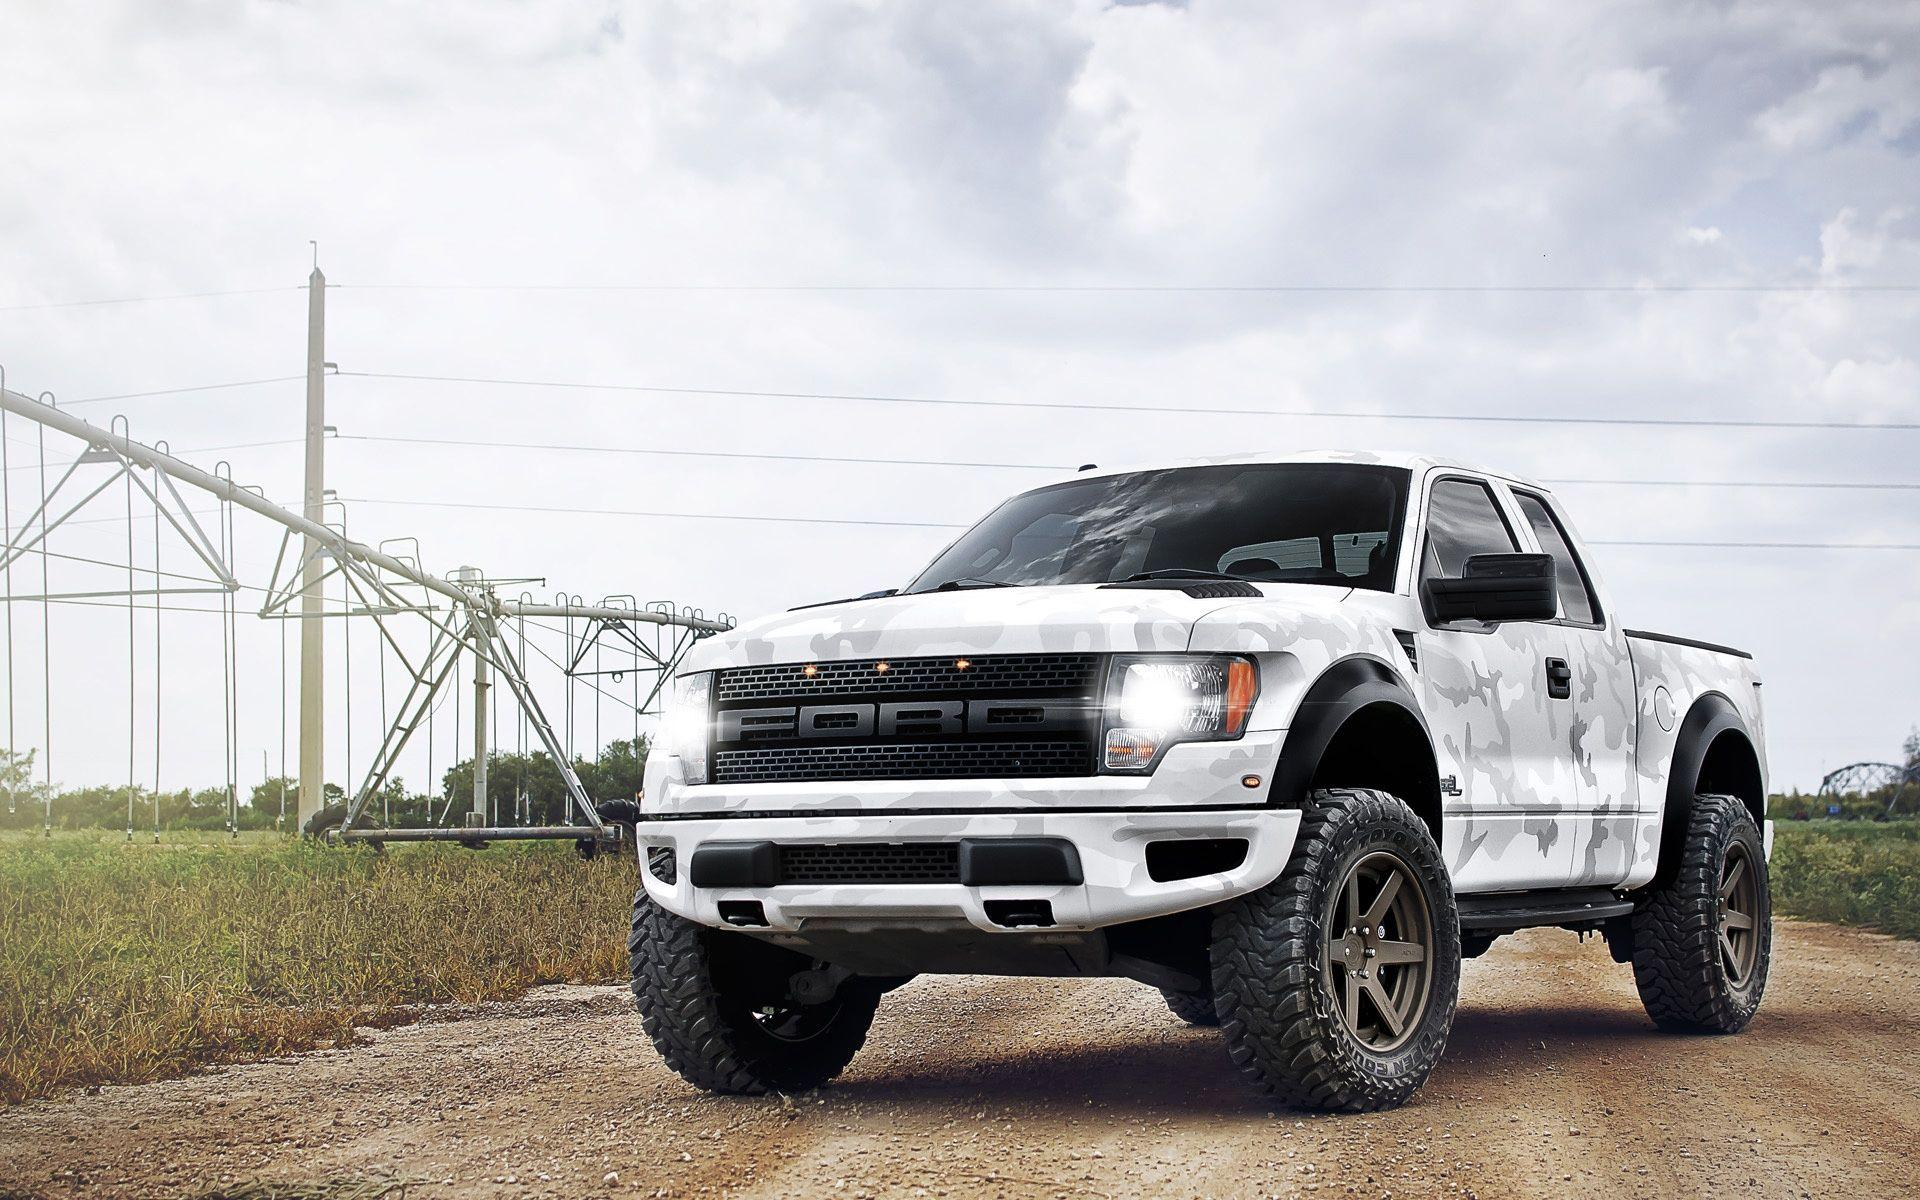 Ford Raptor HD Wallpapers | PixelsTalk.Net